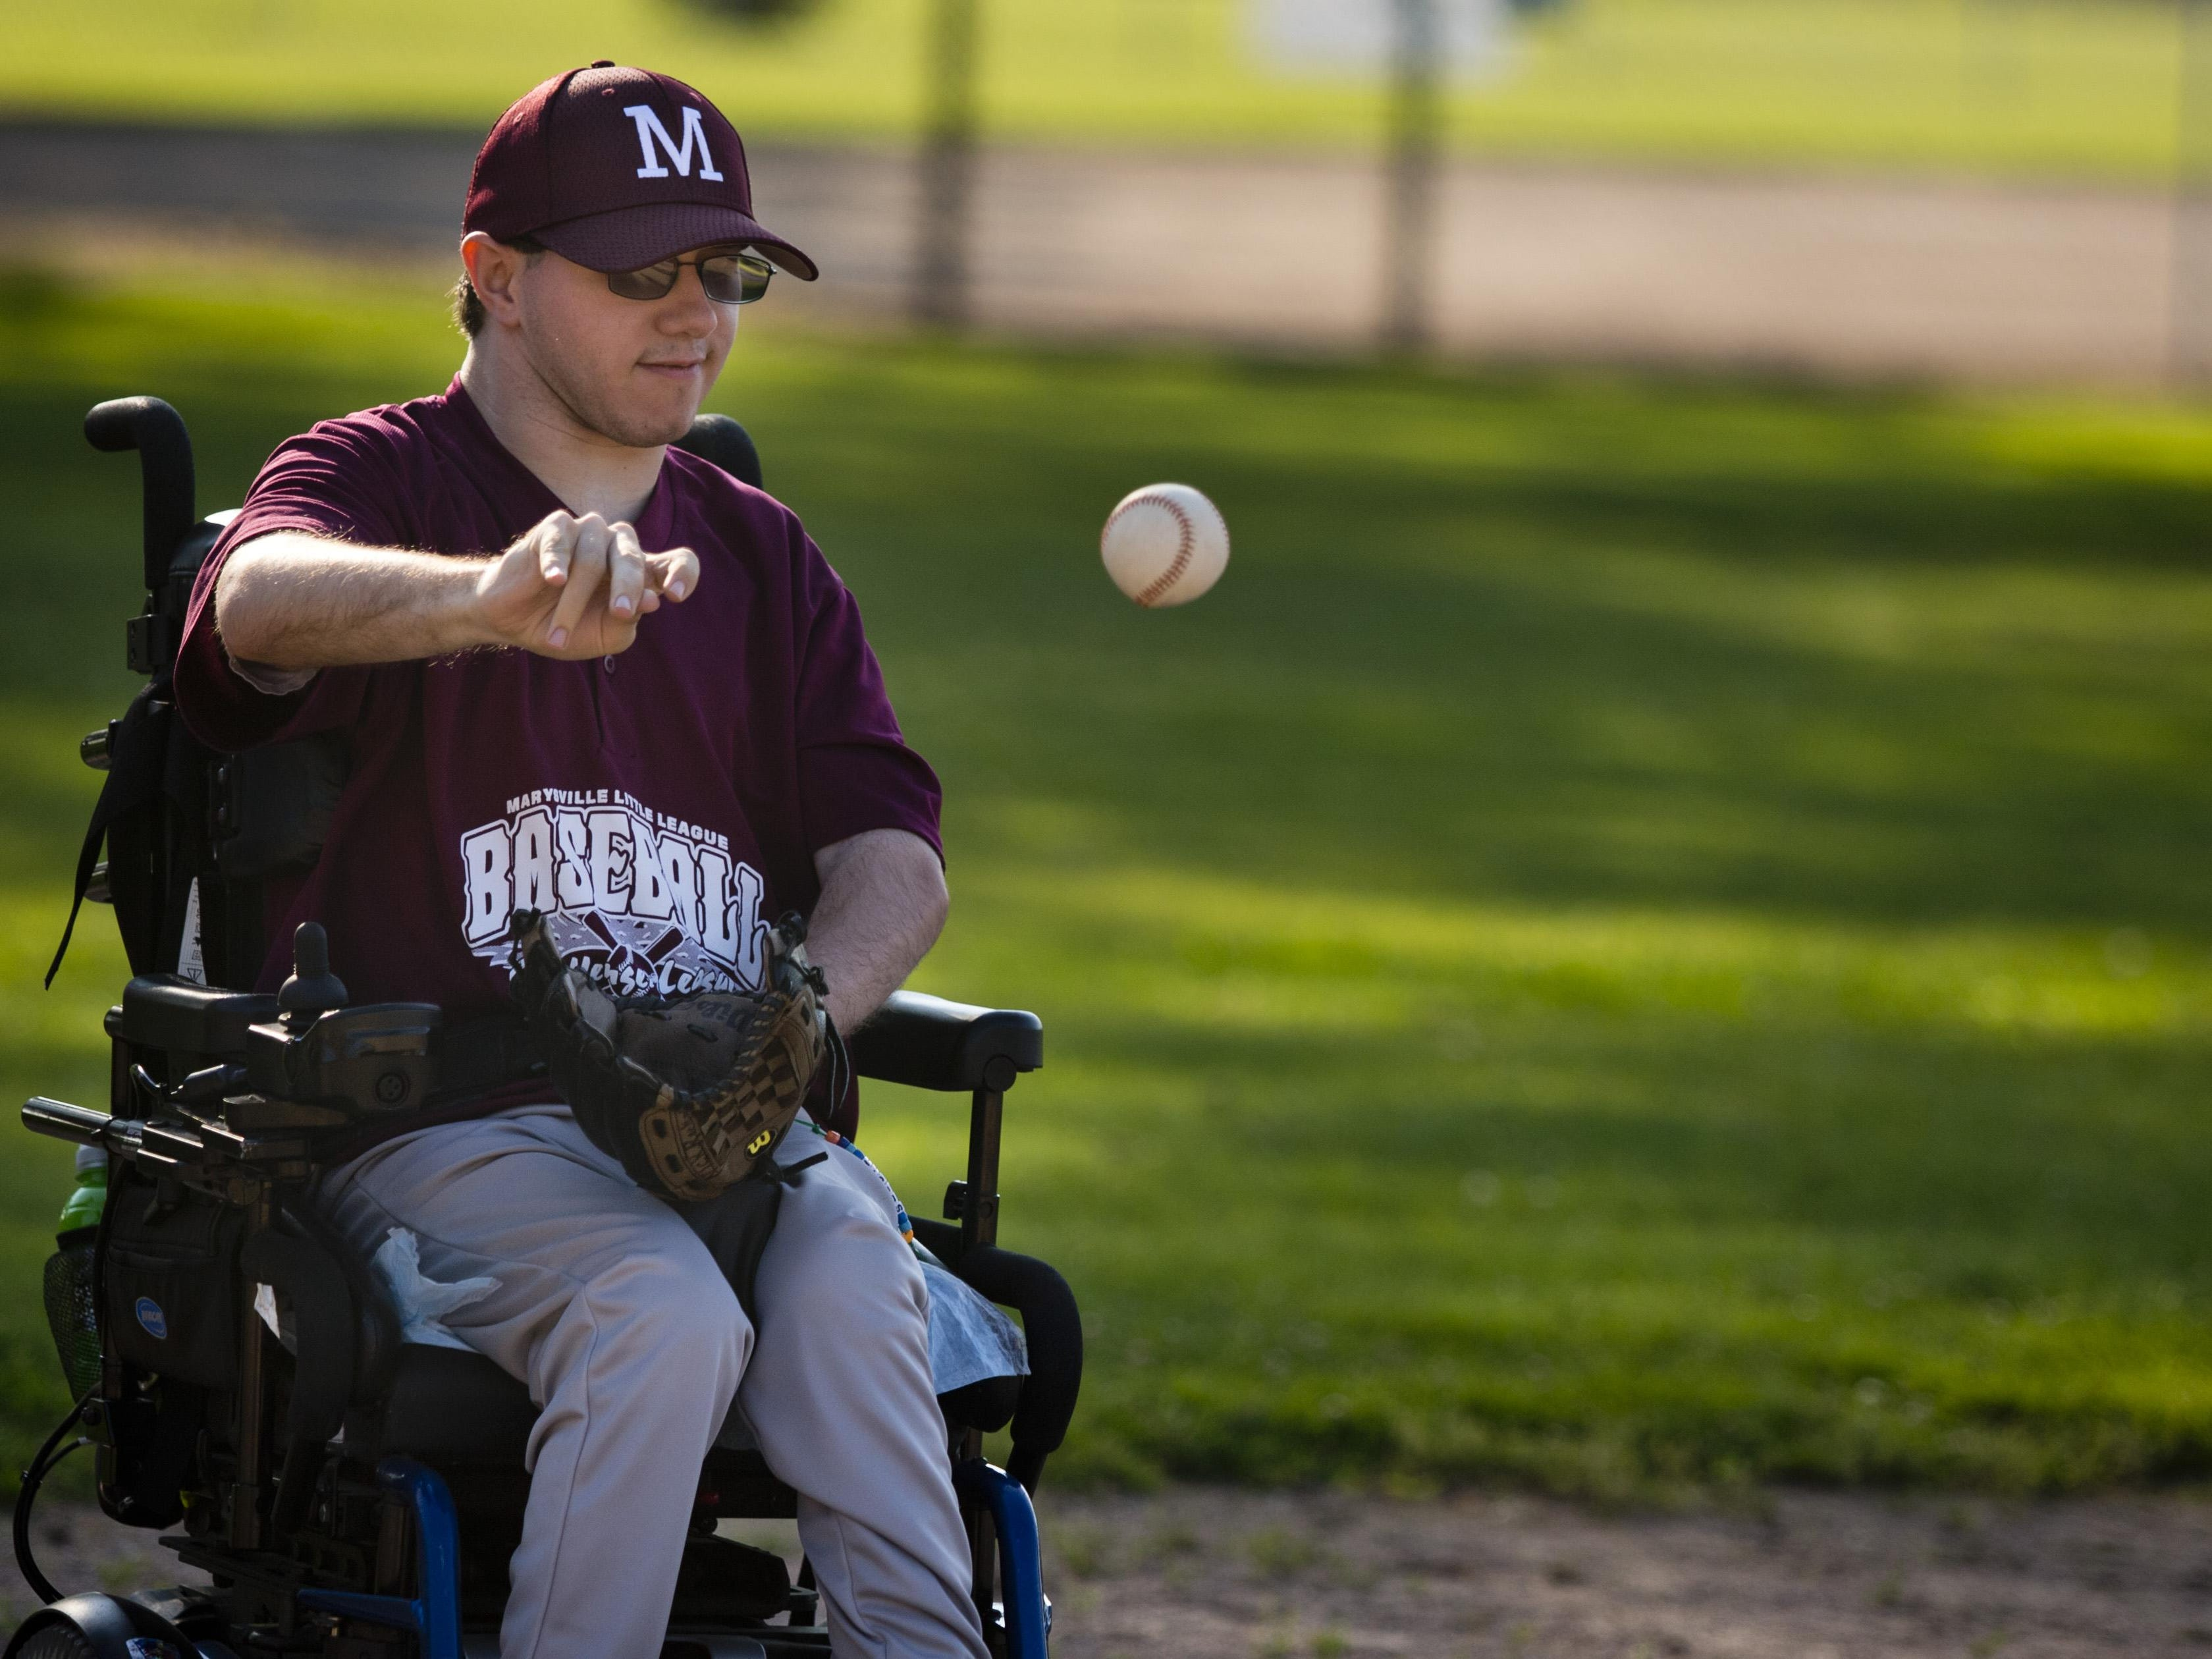 Nick Rockwell, 20, of Clyde Township, throws the ball during a Marysville Little League Challenger Division baseball game Thursday, July 2, 2015 at Marysville Municipal Park.